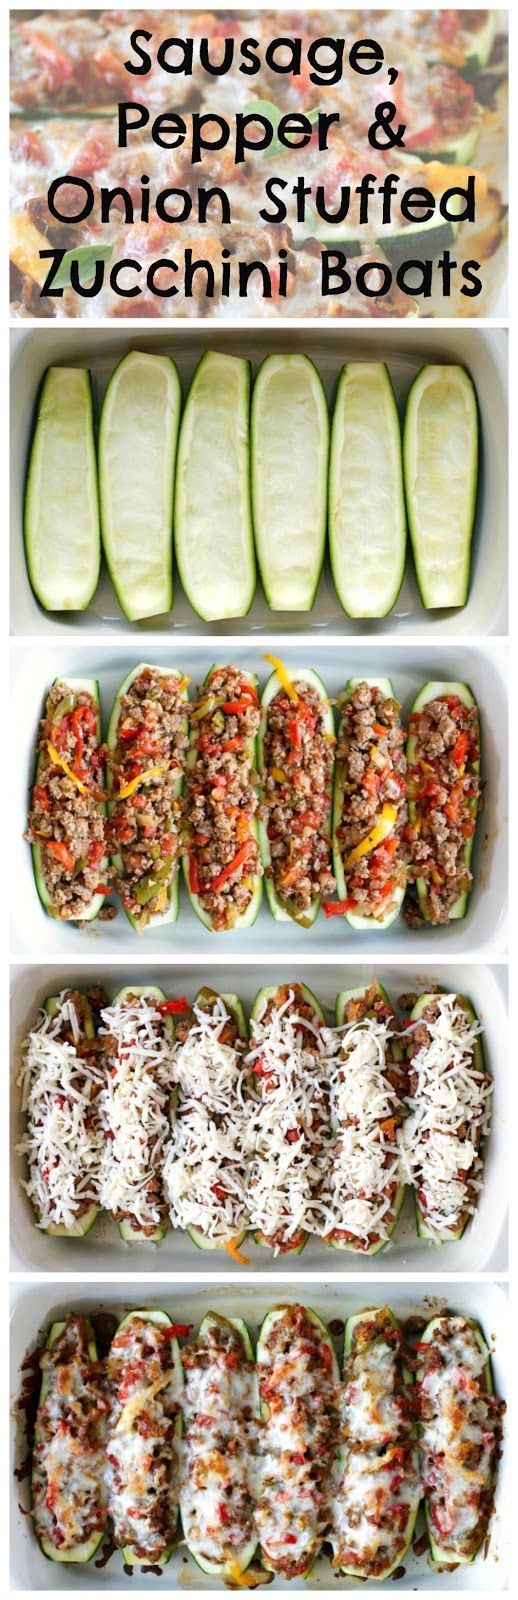 Sausage, Pepper, and Onion Stuffed Zucchini Boats are a twist on the classic northern dish, made by swapping the roll with bright and fresh zucchini boats!   thetwobiteclub.com   #JDFamilyTable #ad